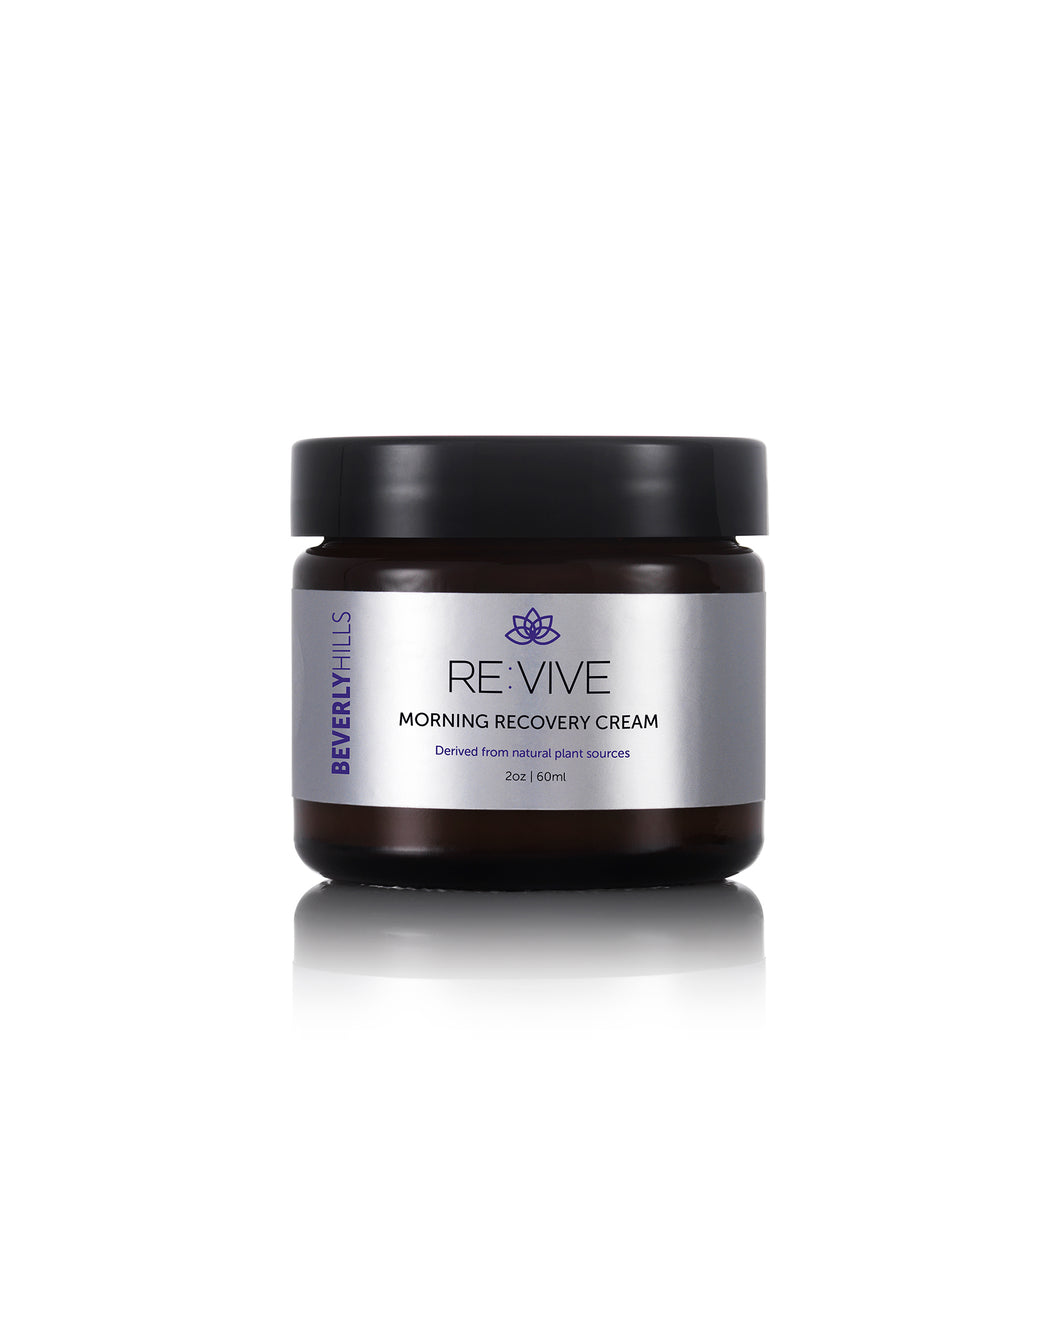 Beverly Hills Revive Morning Recovery Cream 2 fl oz / 60ml